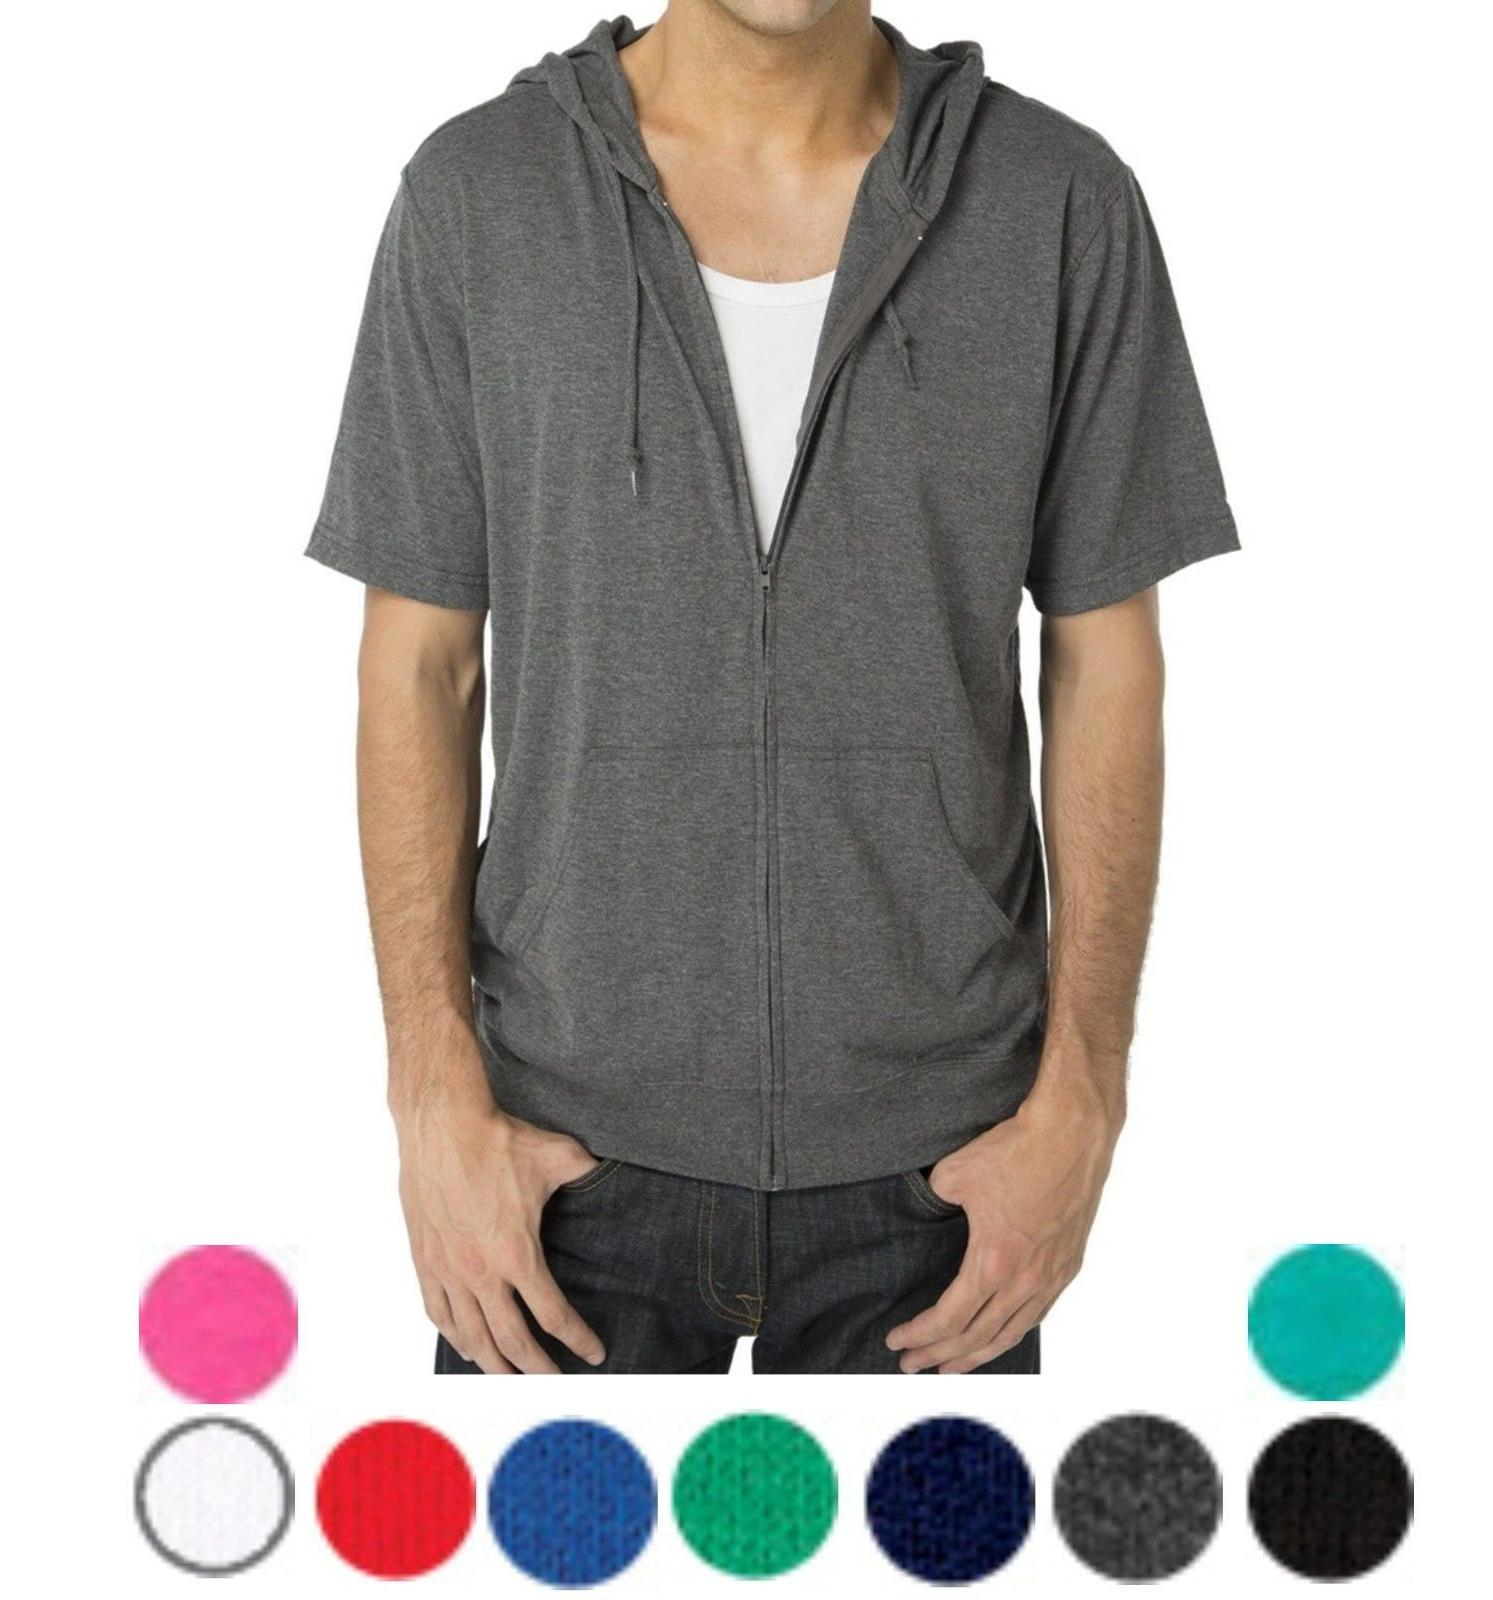 MEN'S LIGHTWEIGHT, ZIP UP, SHORT SLEEVE, JERSEY, BEACH / T-S